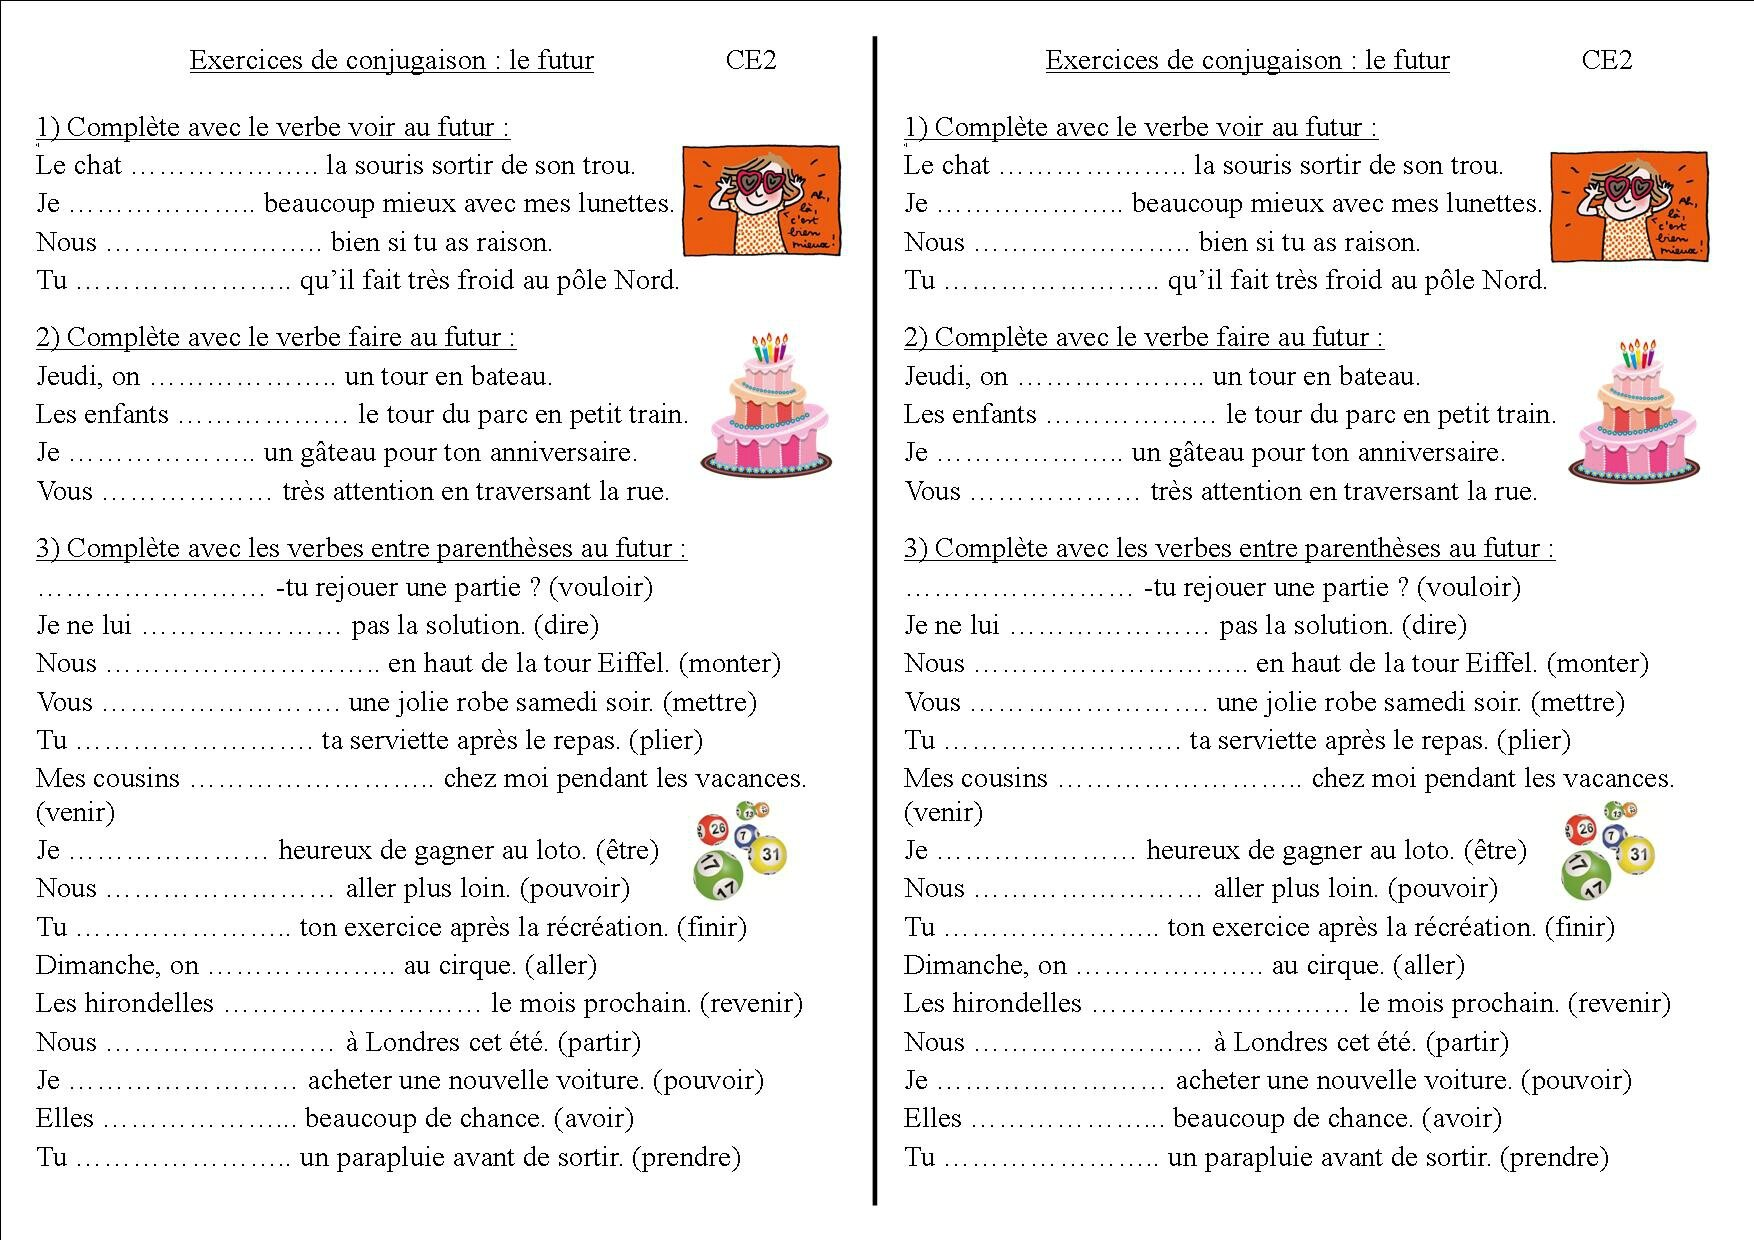 Le Verbe Faire Worksheet Printable Worksheets And Activities For Teachers Parents Tutors And Homeschool Families